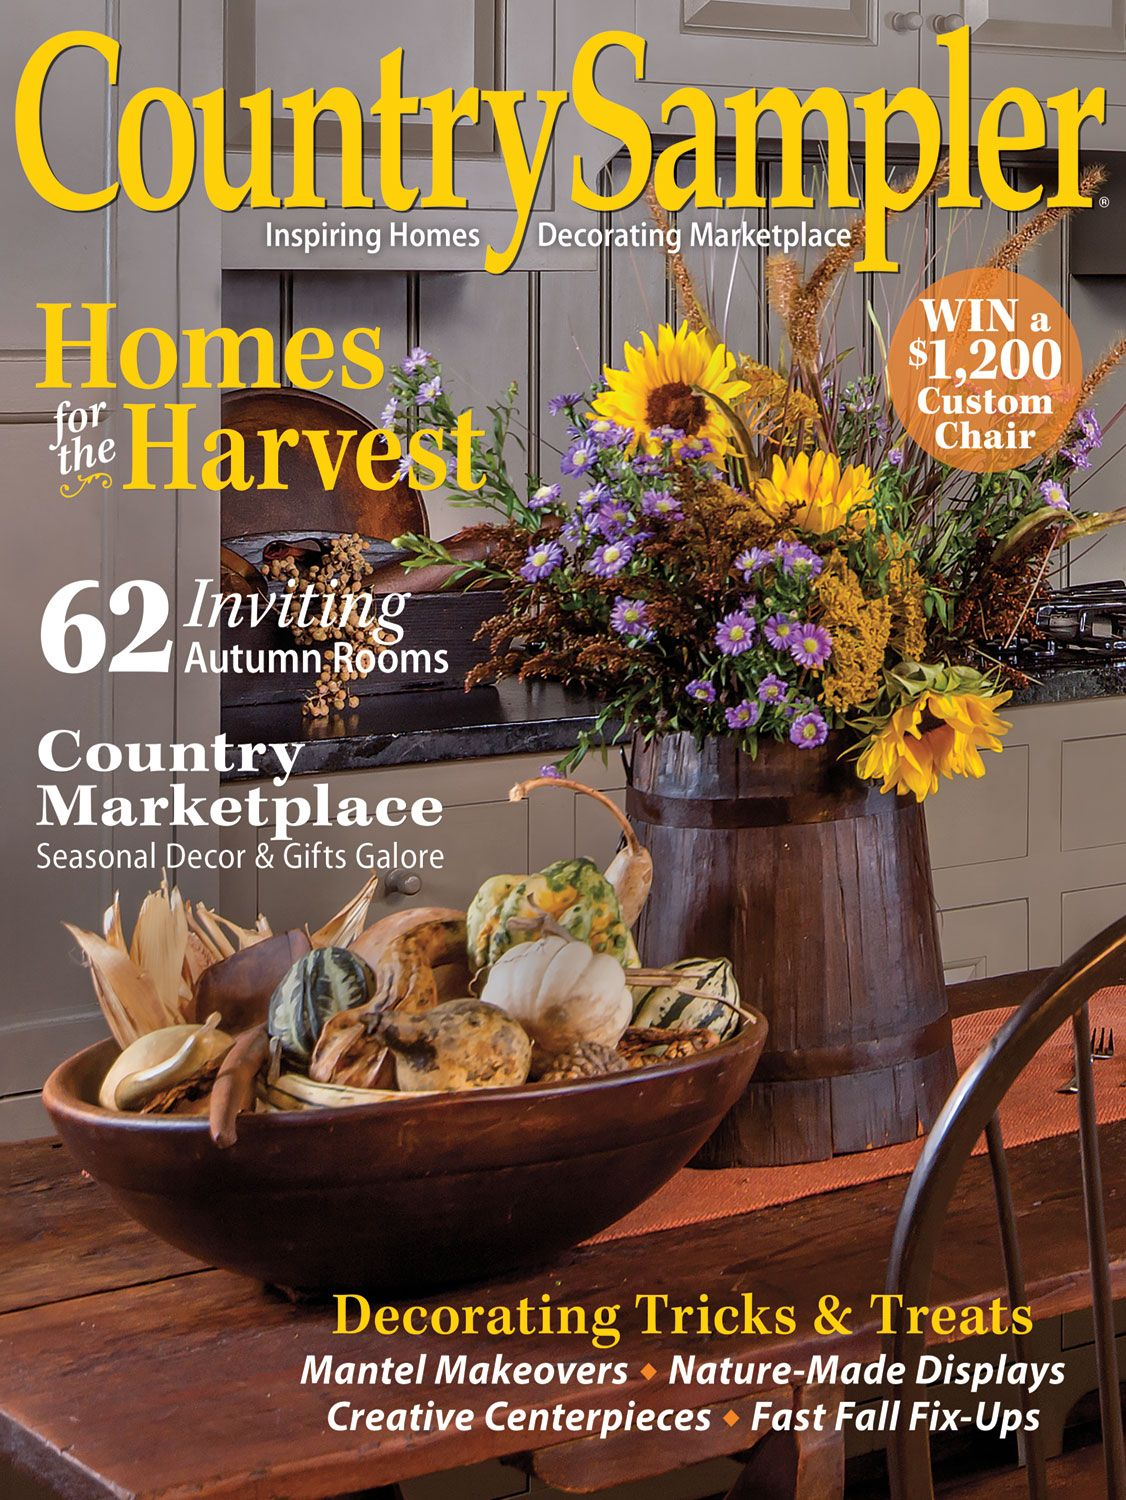 September Decorating Ideas Pleasing Our September Issue Is Chockfull Of Great Fall Decorating Ideas . Design Decoration